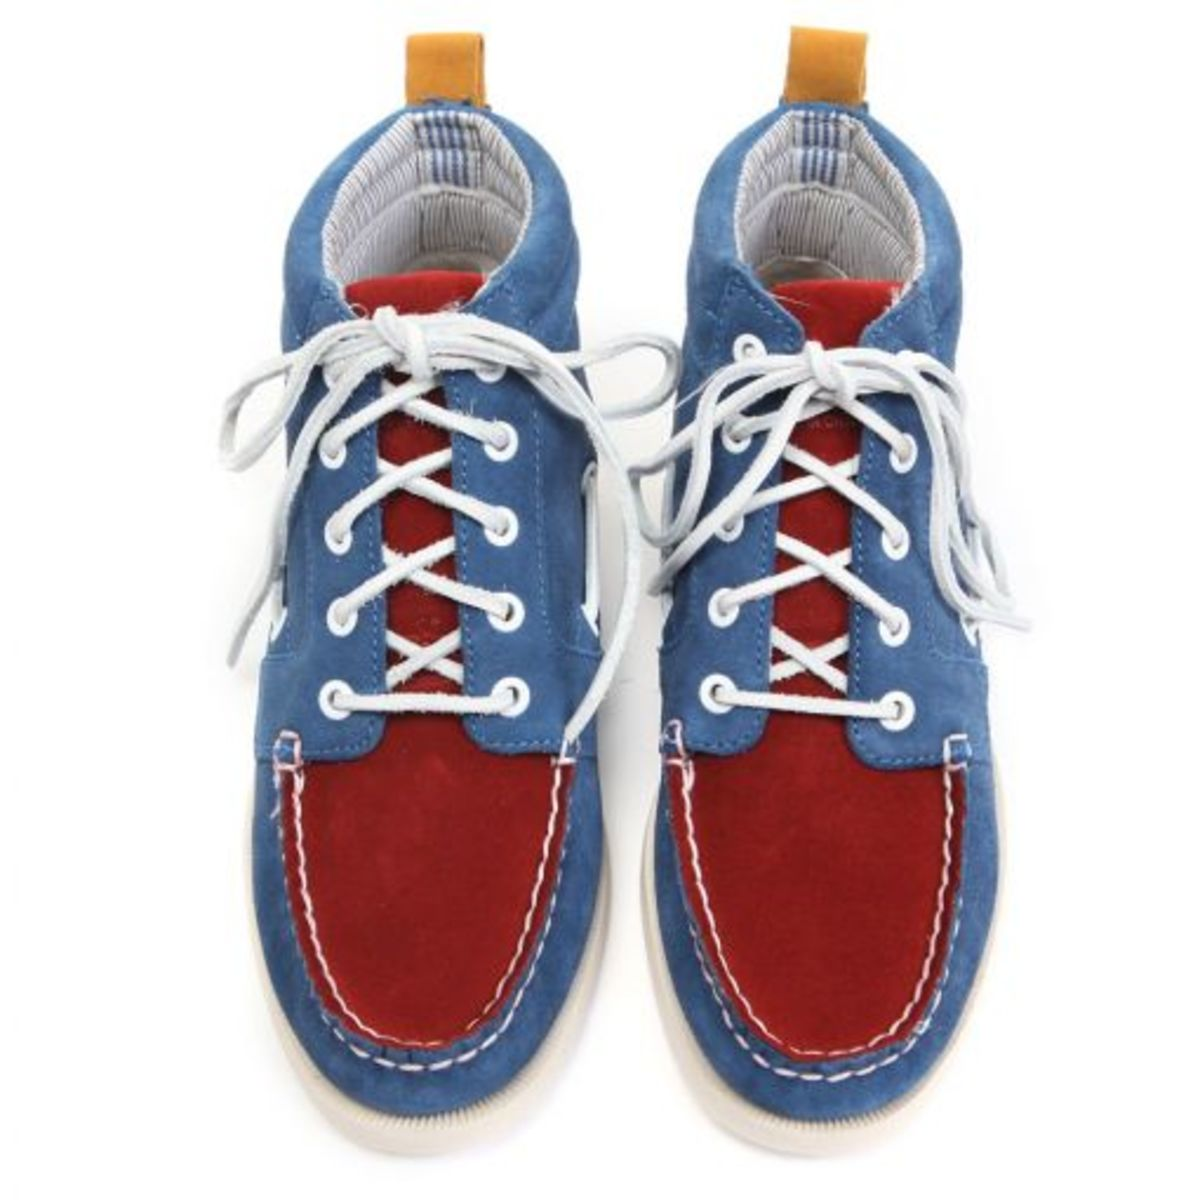 band_of_outsider_sperry_topsider_14